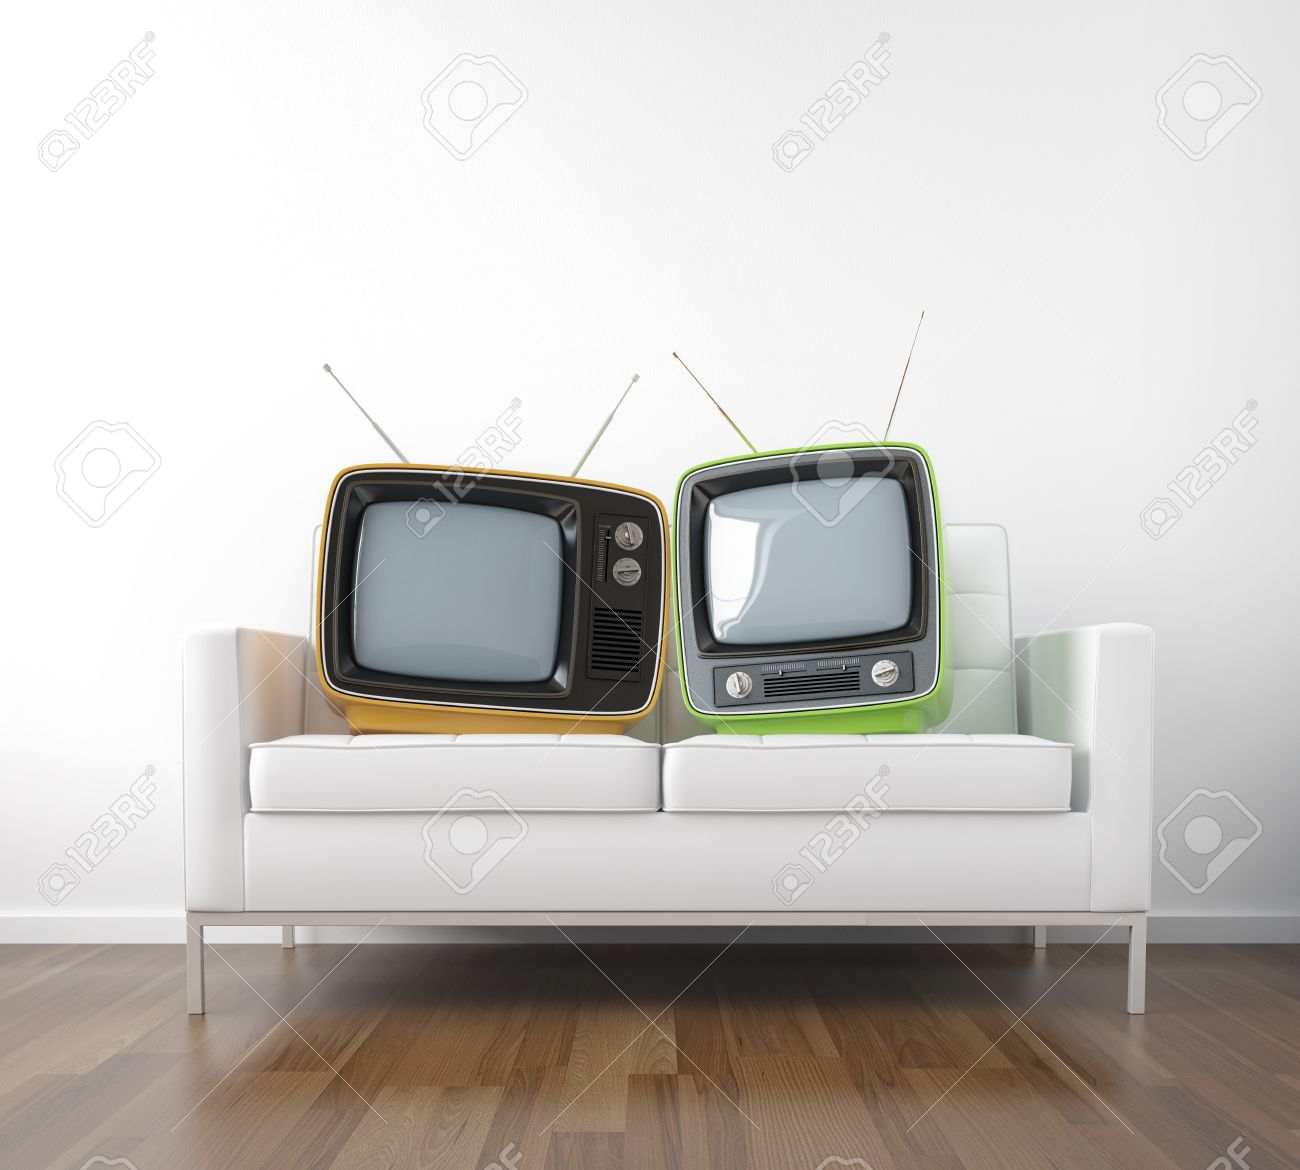 two retro tv in a couch as a metaphor of couple watching television conceptual scene with copy space Stock Photo - 8325227